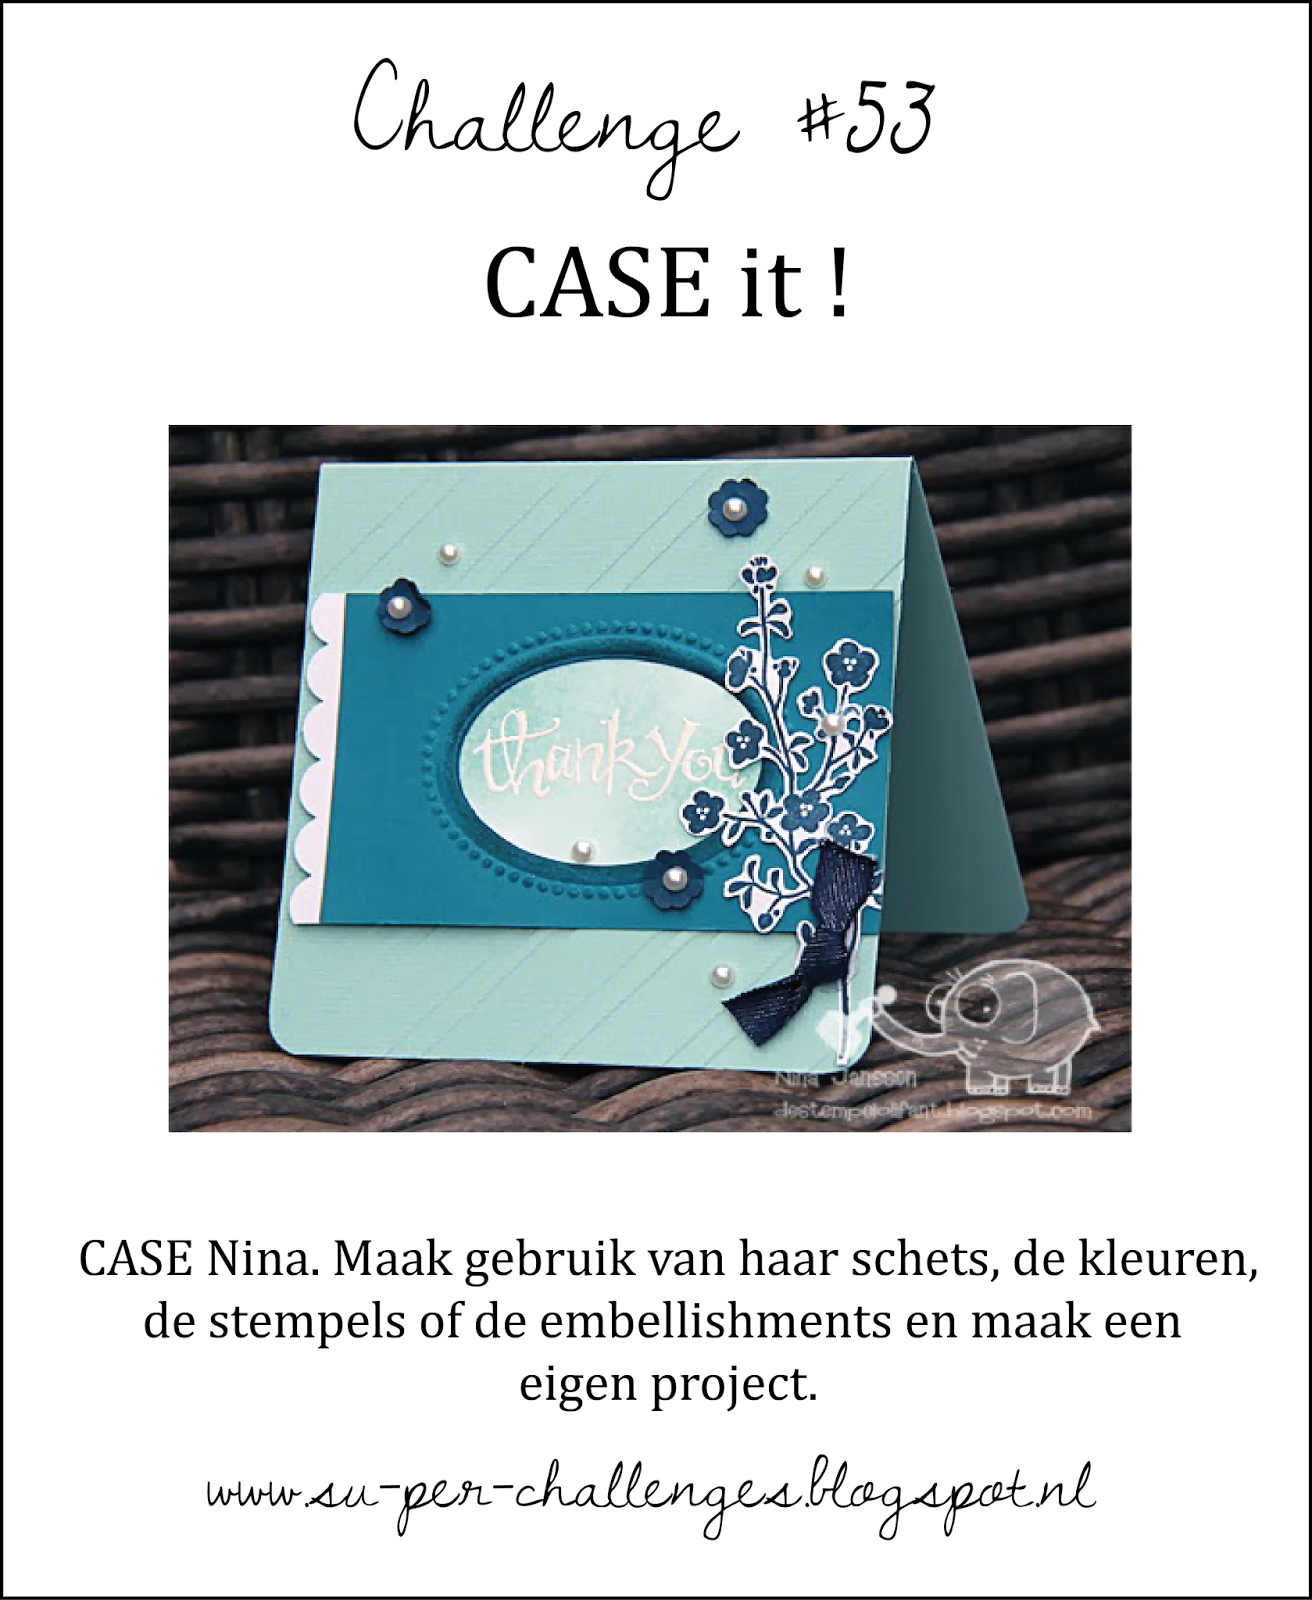 http://su-per-challenges.blogspot.nl/2014/09/challenge-53-case-it.html